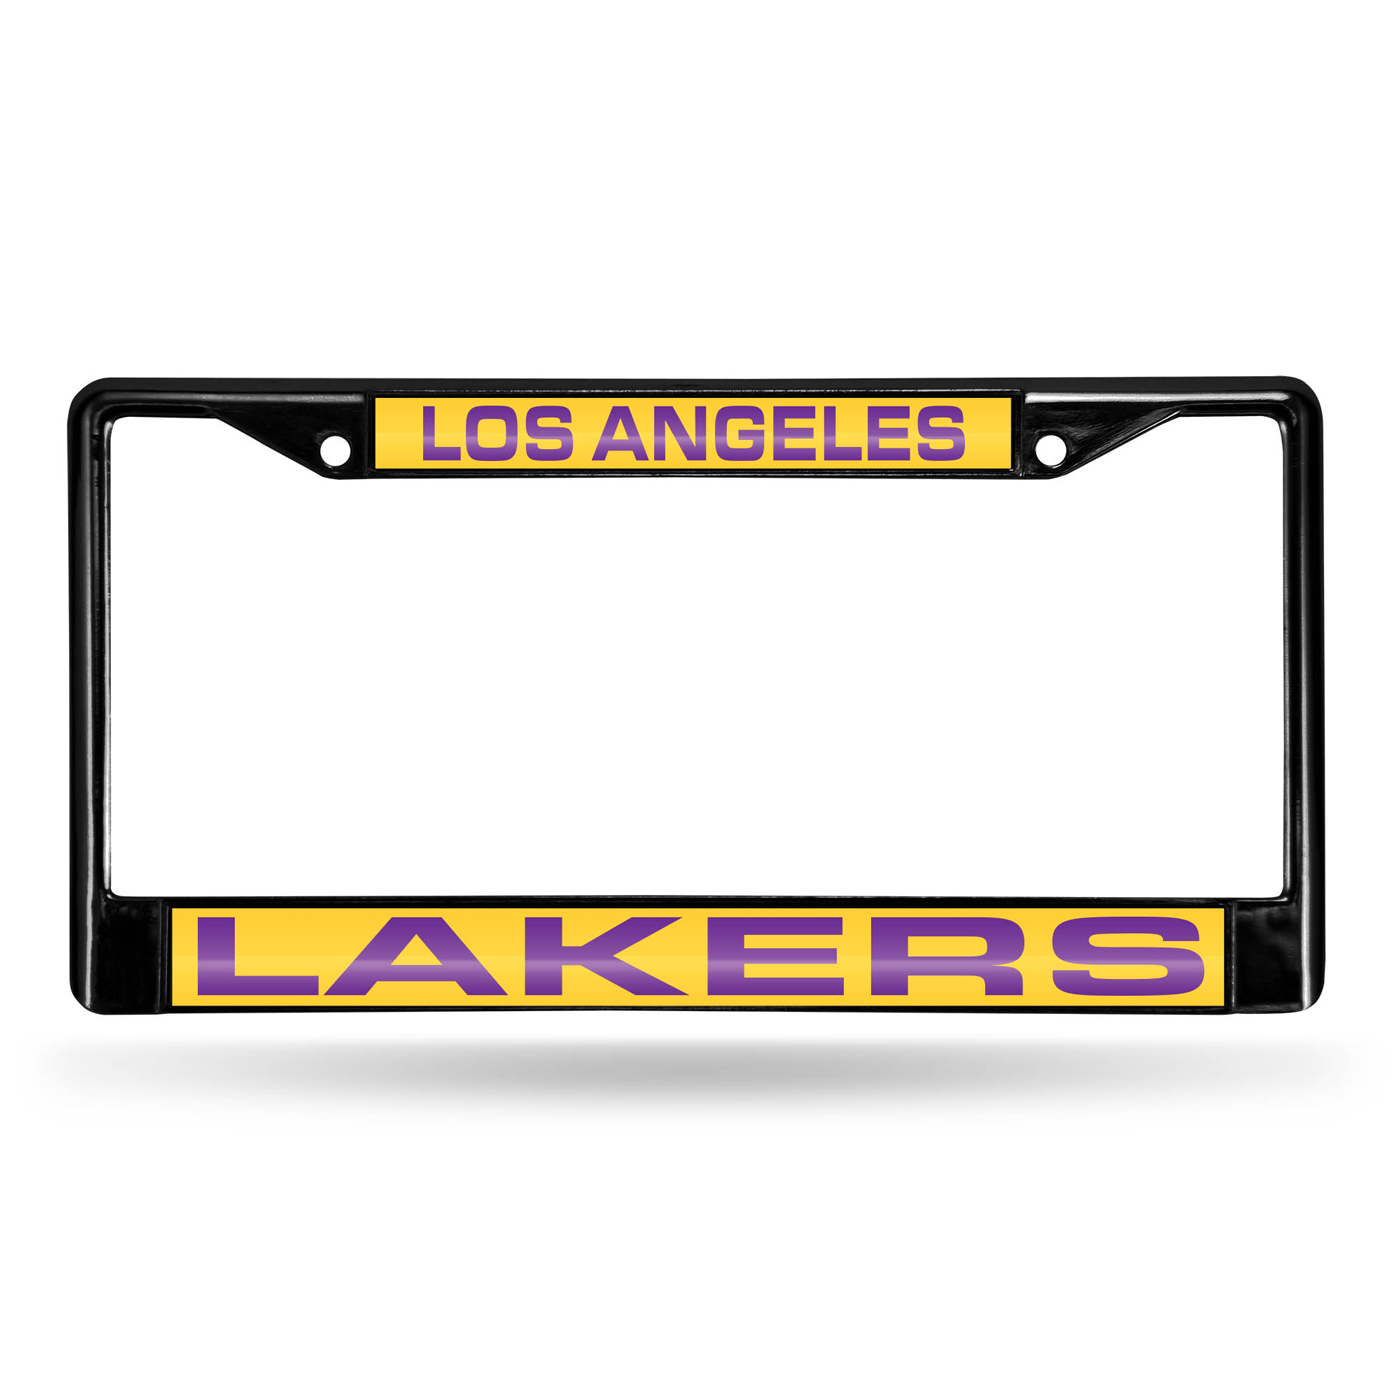 Los Angeles Lakers Laser Black License Plate Frame. Memorial Hospital School Of Nursing. Texas Articles Of Organization. Drain Cleaning Dayton Ohio Memory Book Photo. Cleveland Cavaliers Score Veins In Your Neck. Eastover Ob Gyn Arboretum Muskogee Tag Office. Free Website With Domain Name. Cheapest Mobile Phone Insurance. Earn A Degree Online Fast Crystal Cell Phone